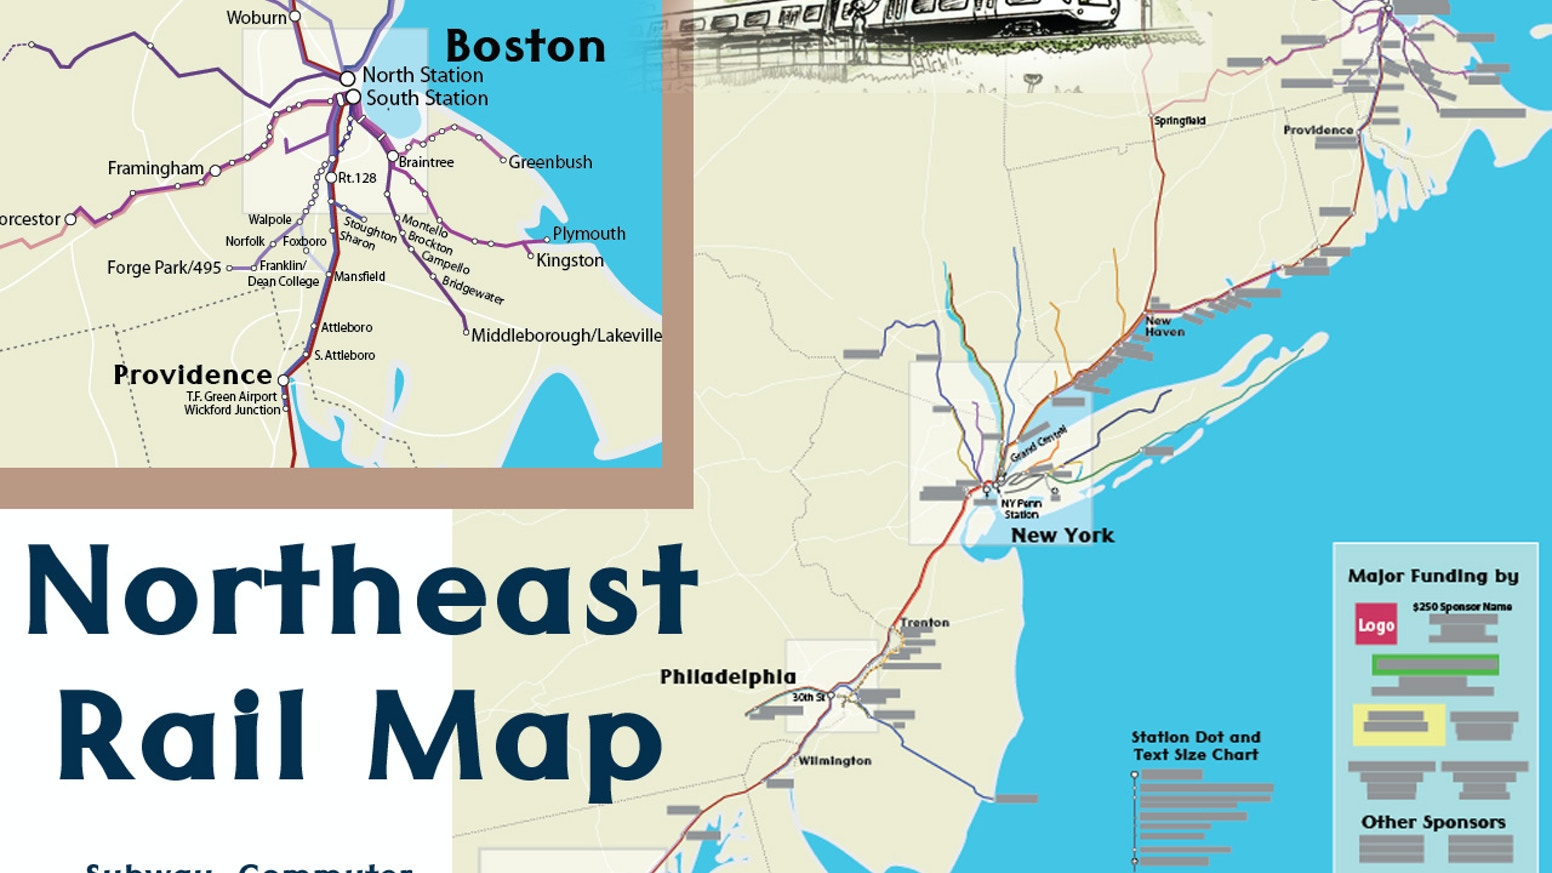 Northeast Us Rail Map By Alfred Kickstarter - Map-of-us-boston